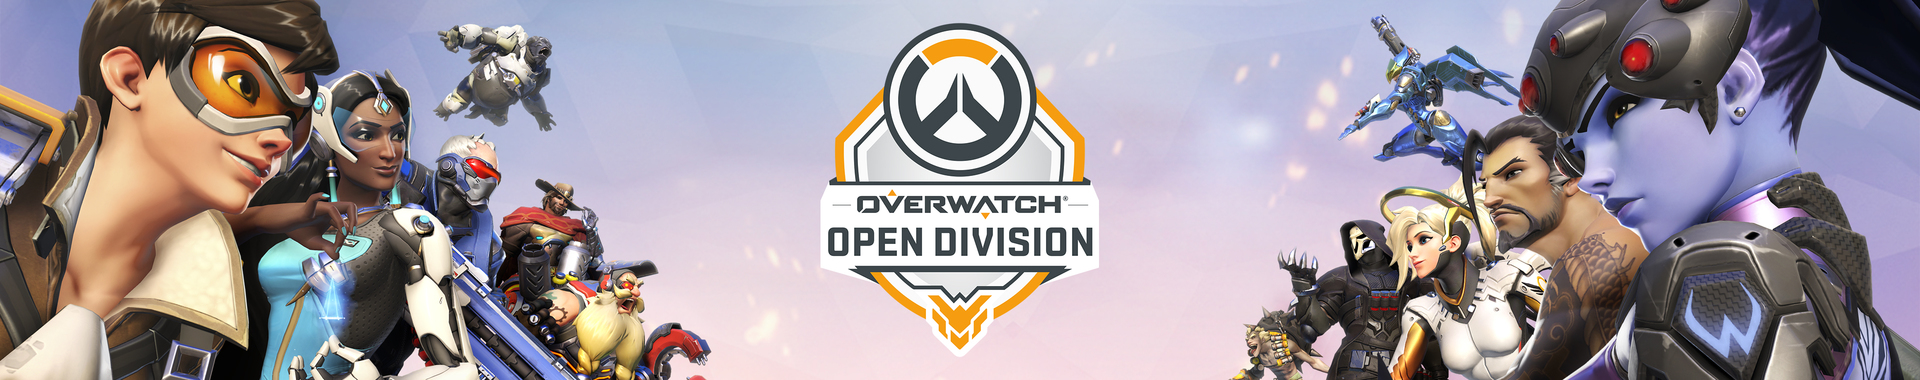 OW Open Division: Season 3